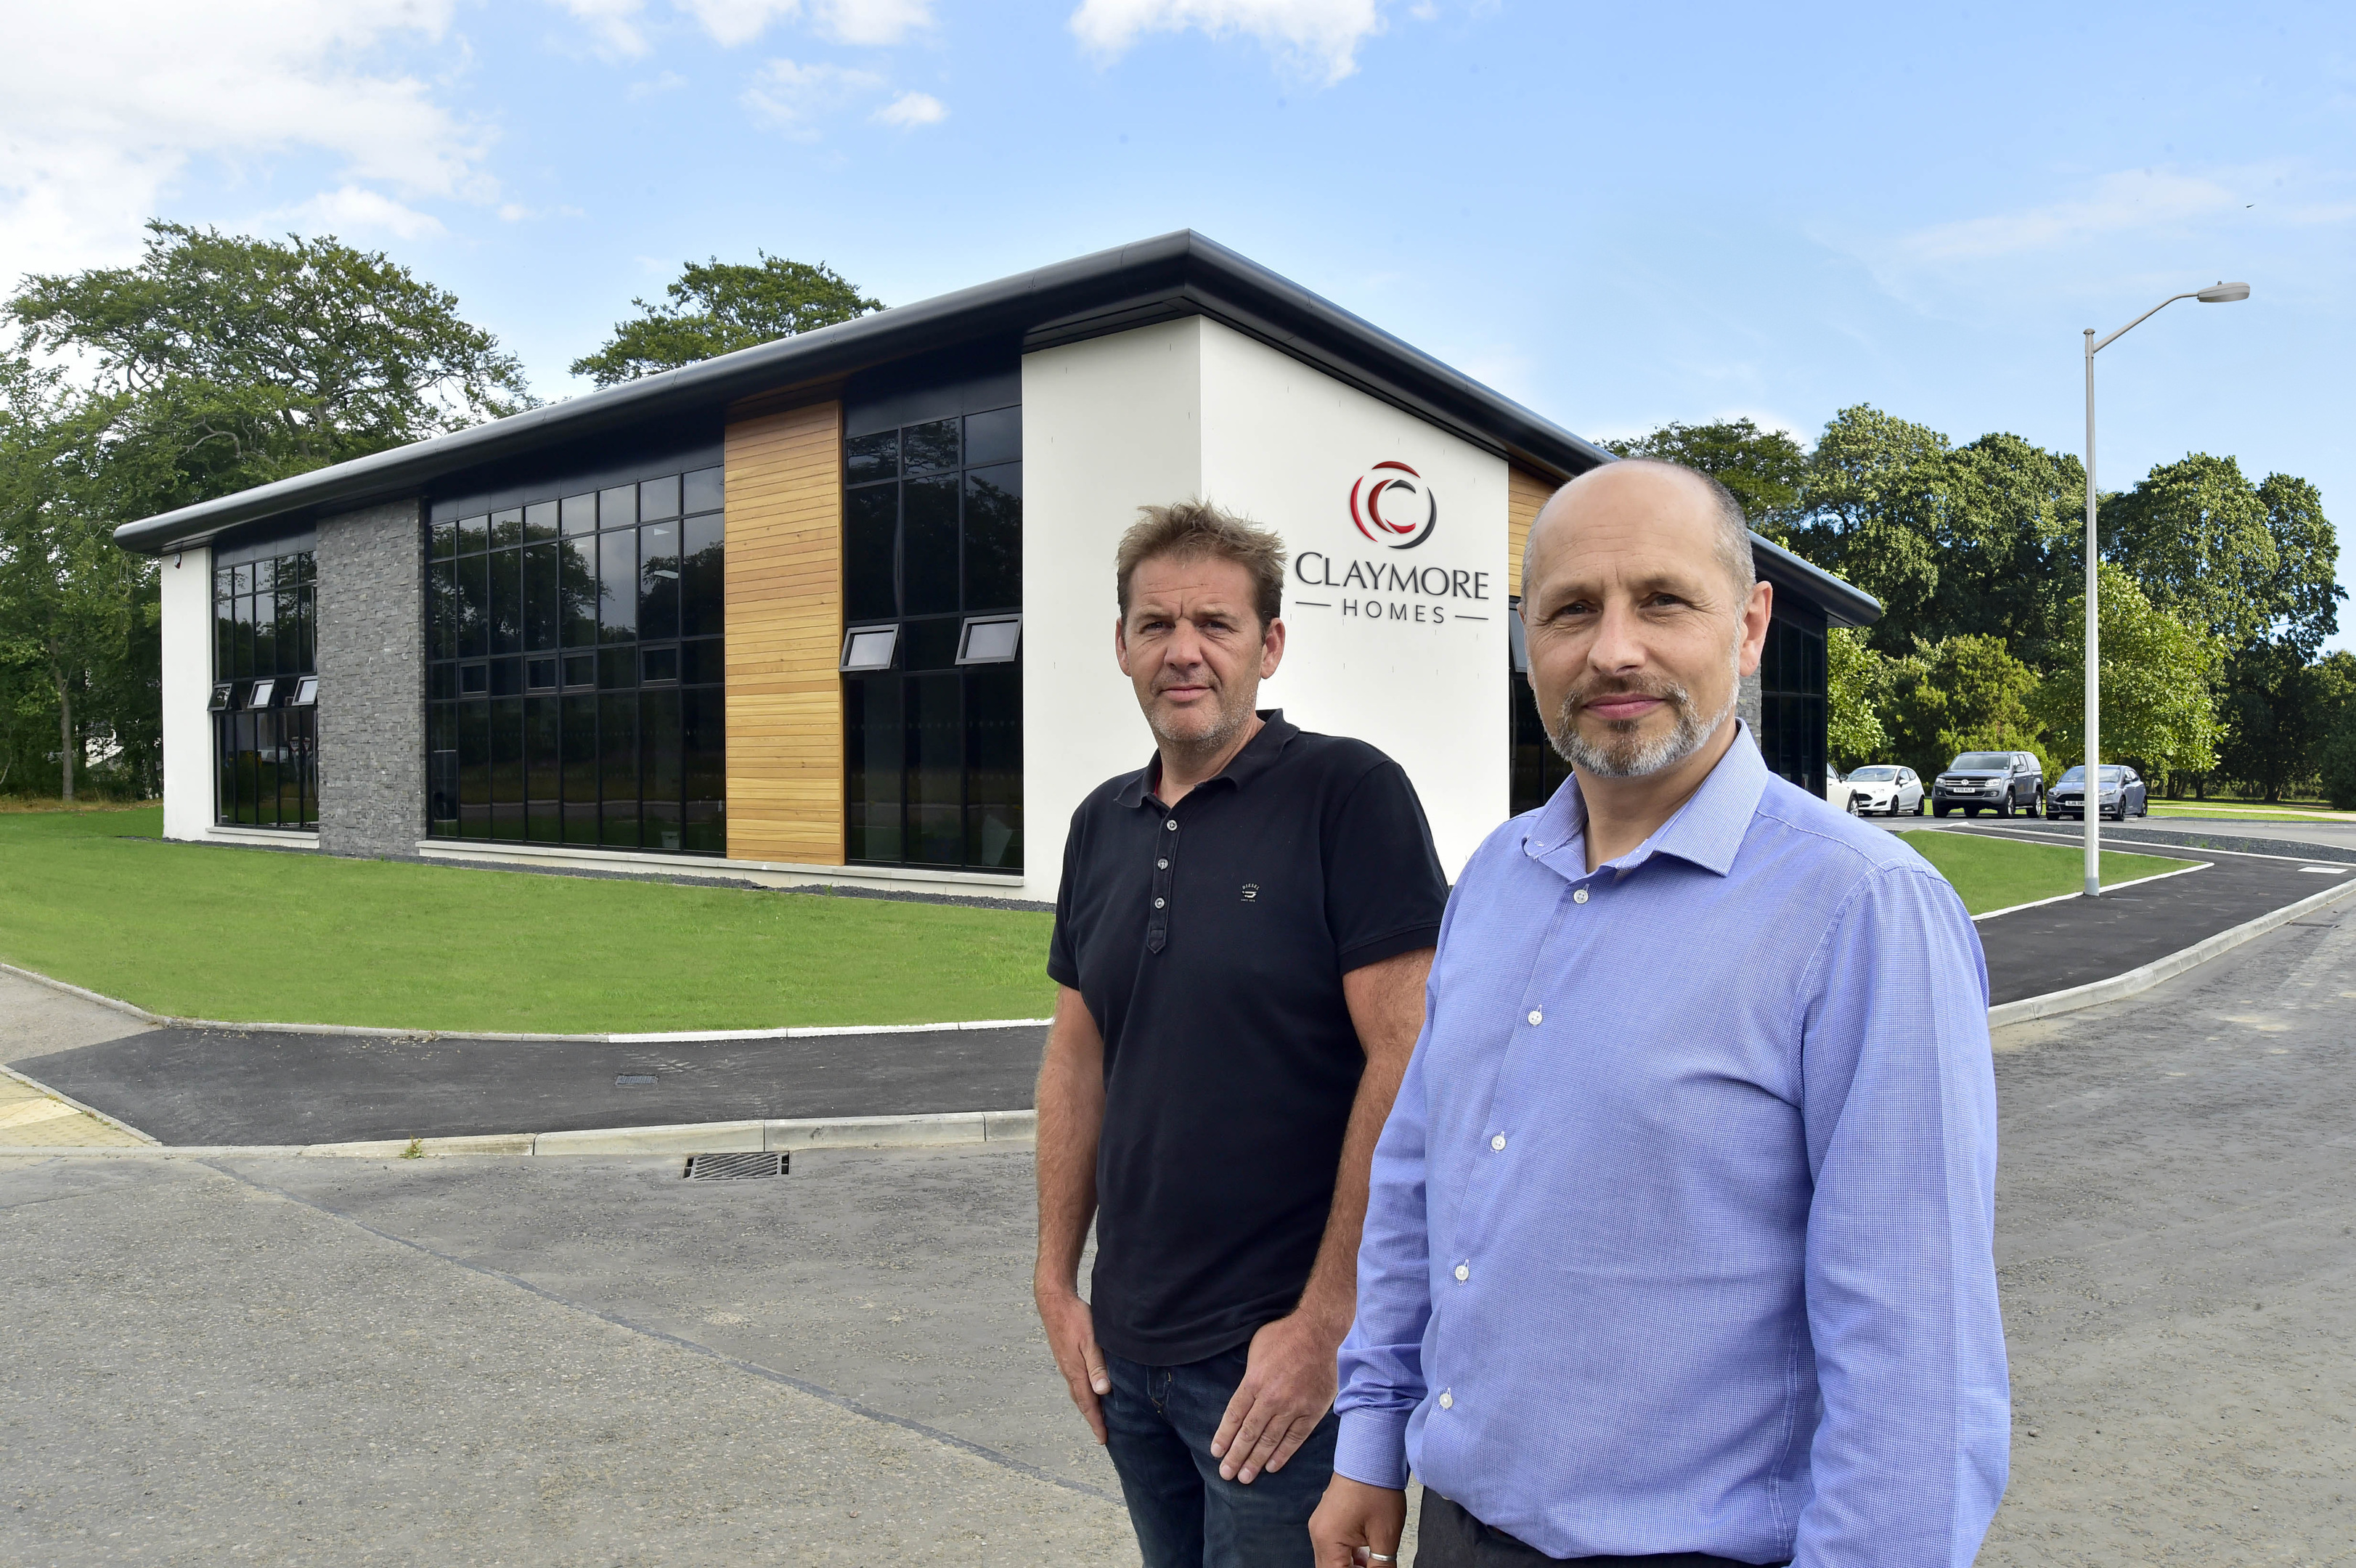 Claymore Homes directors John Smith, left, and Peter Cowie